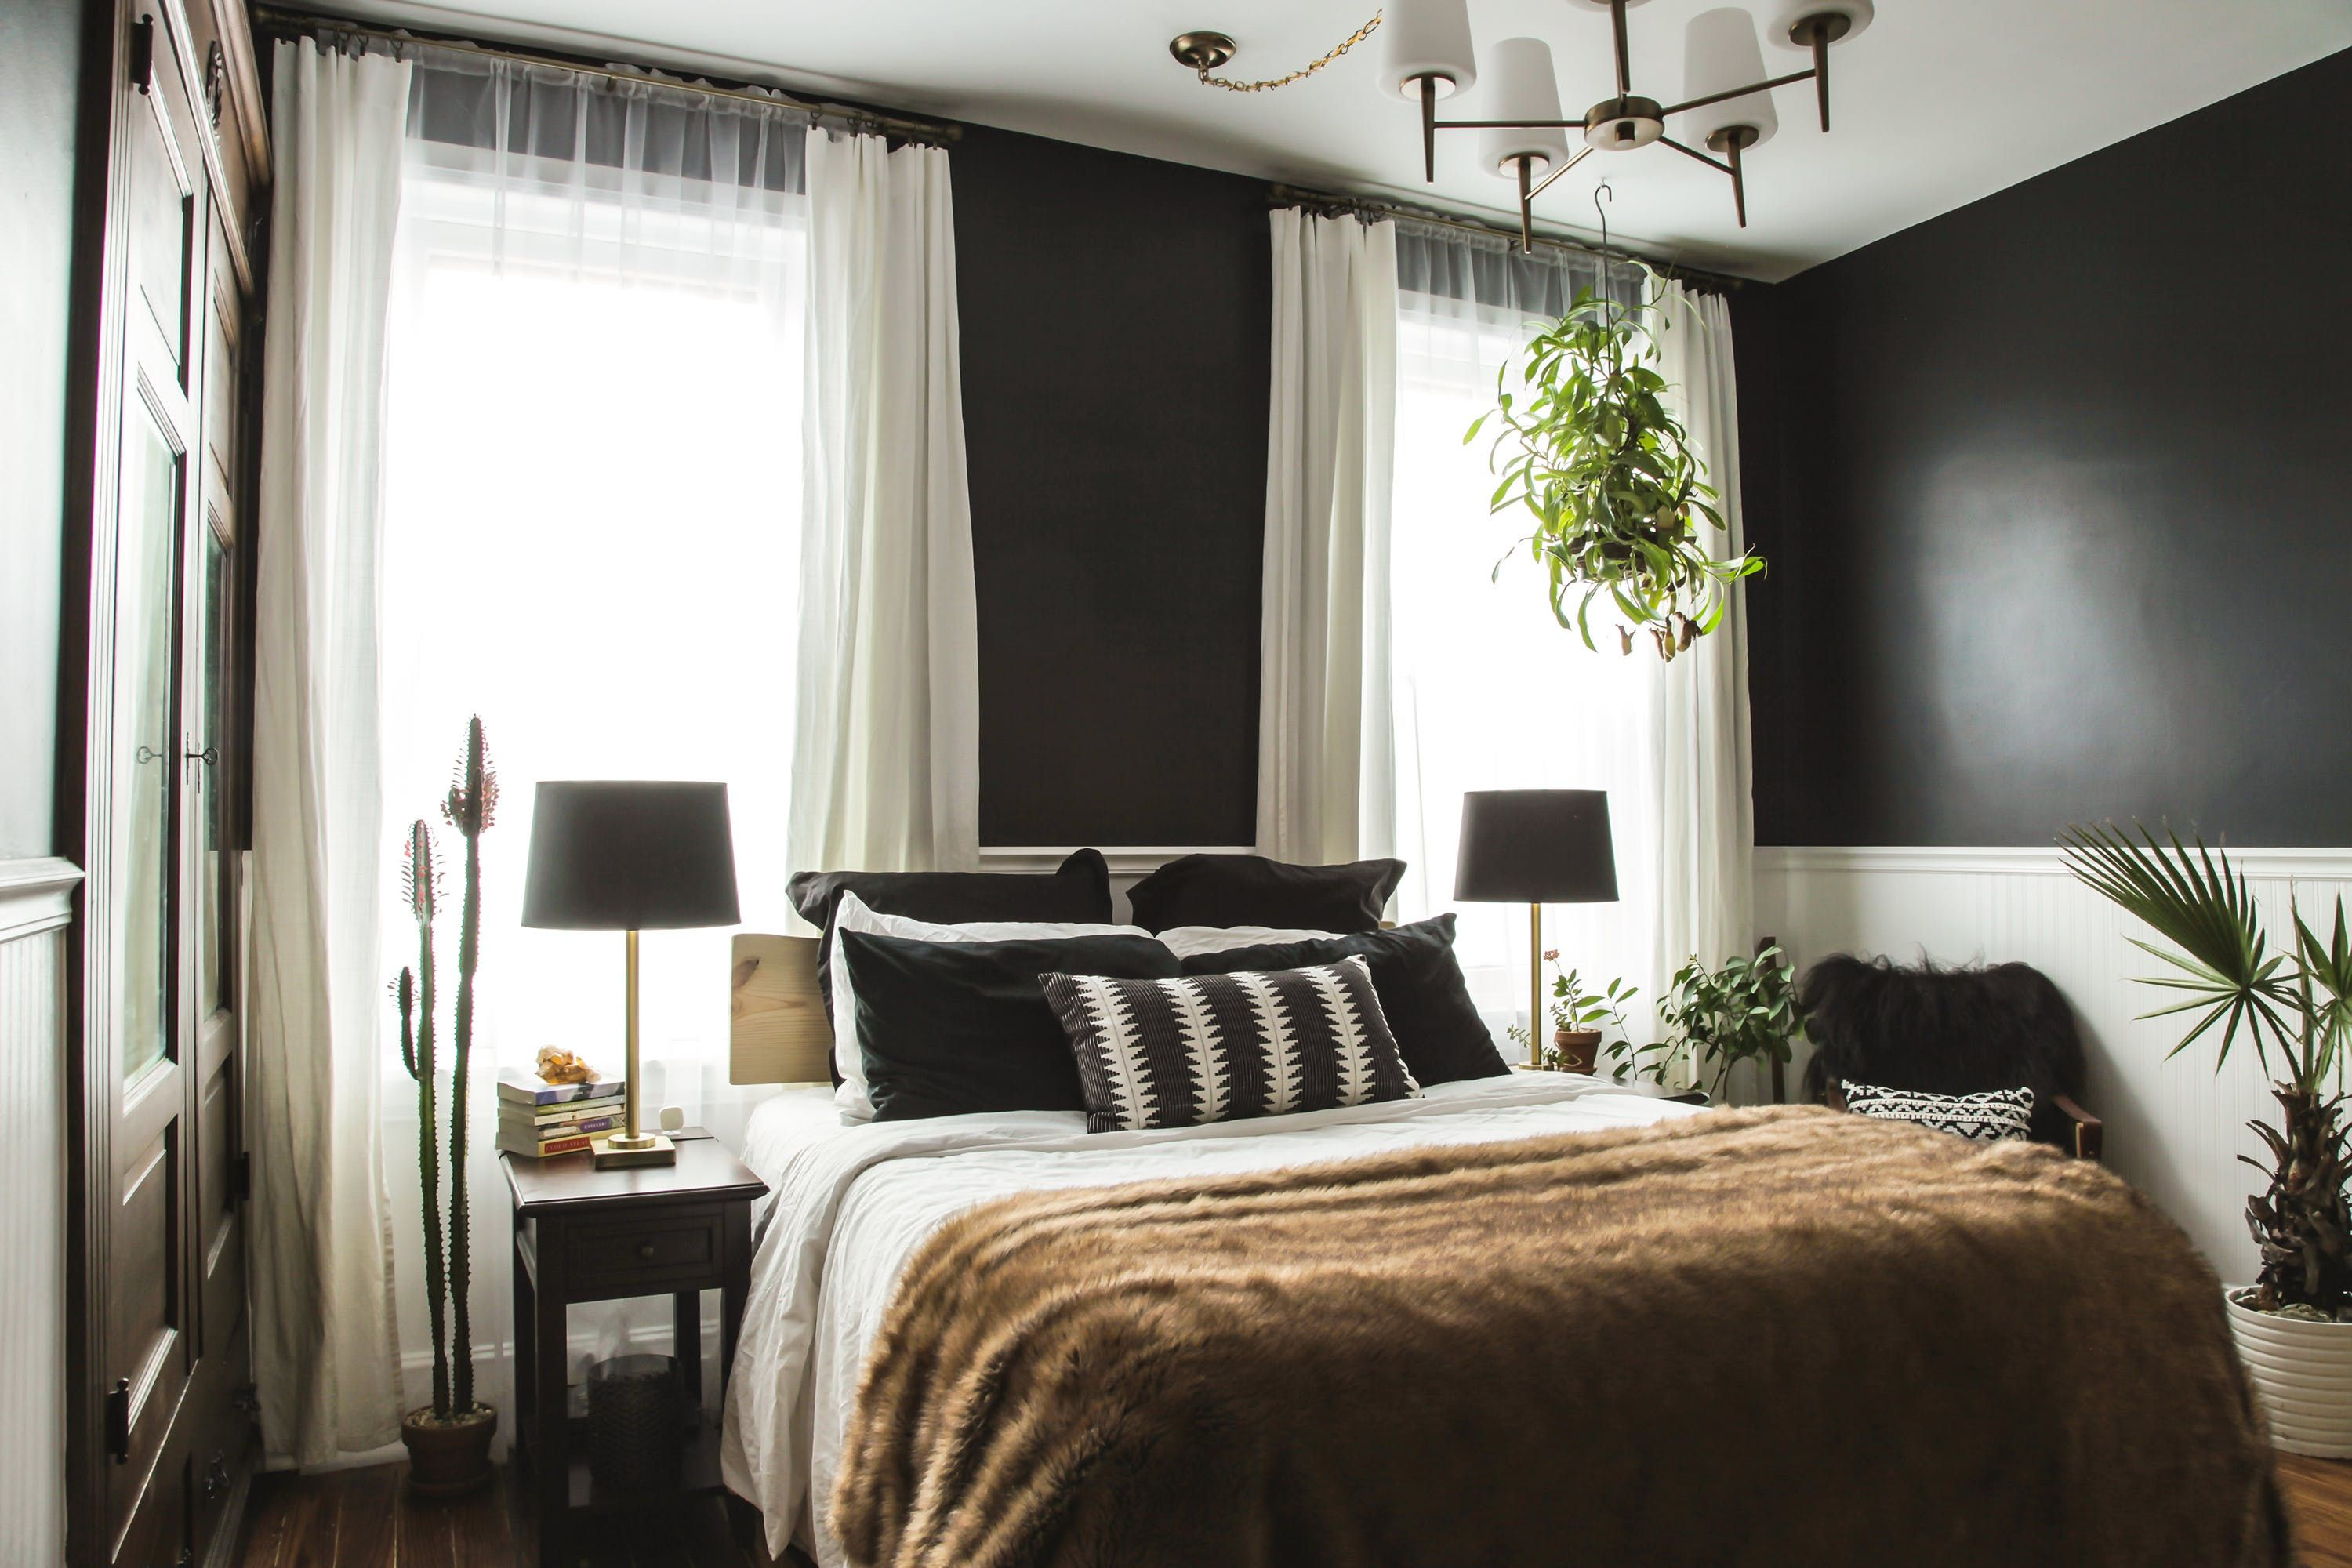 magnificent bedroom furniture stores near me. Bed Linens, Window Covers, Bedside Tables And Lamps // Before \u0026 After: A \ Magnificent Bedroom Furniture Stores Near Me